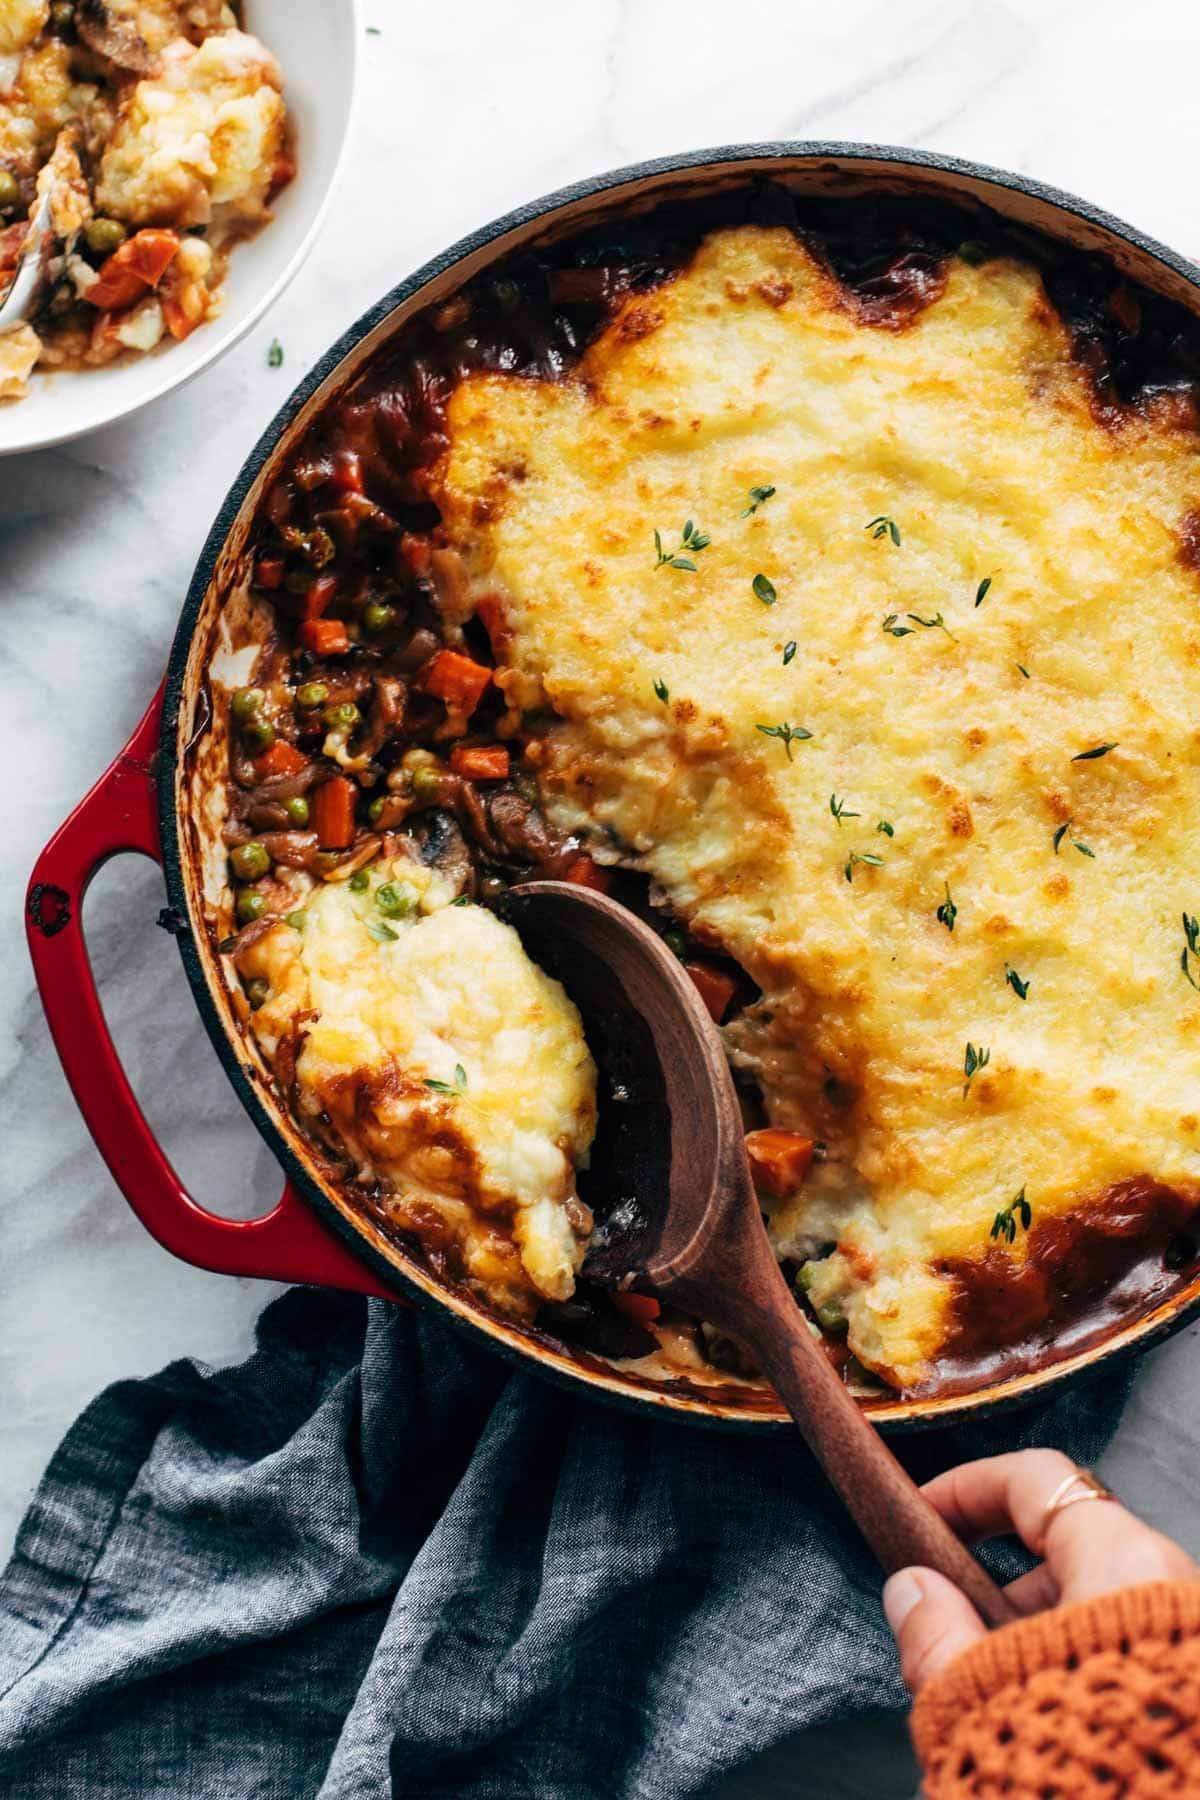 Vegetarian Shepherd's Pie in a red casserole dish being scooped with a wooden spoon